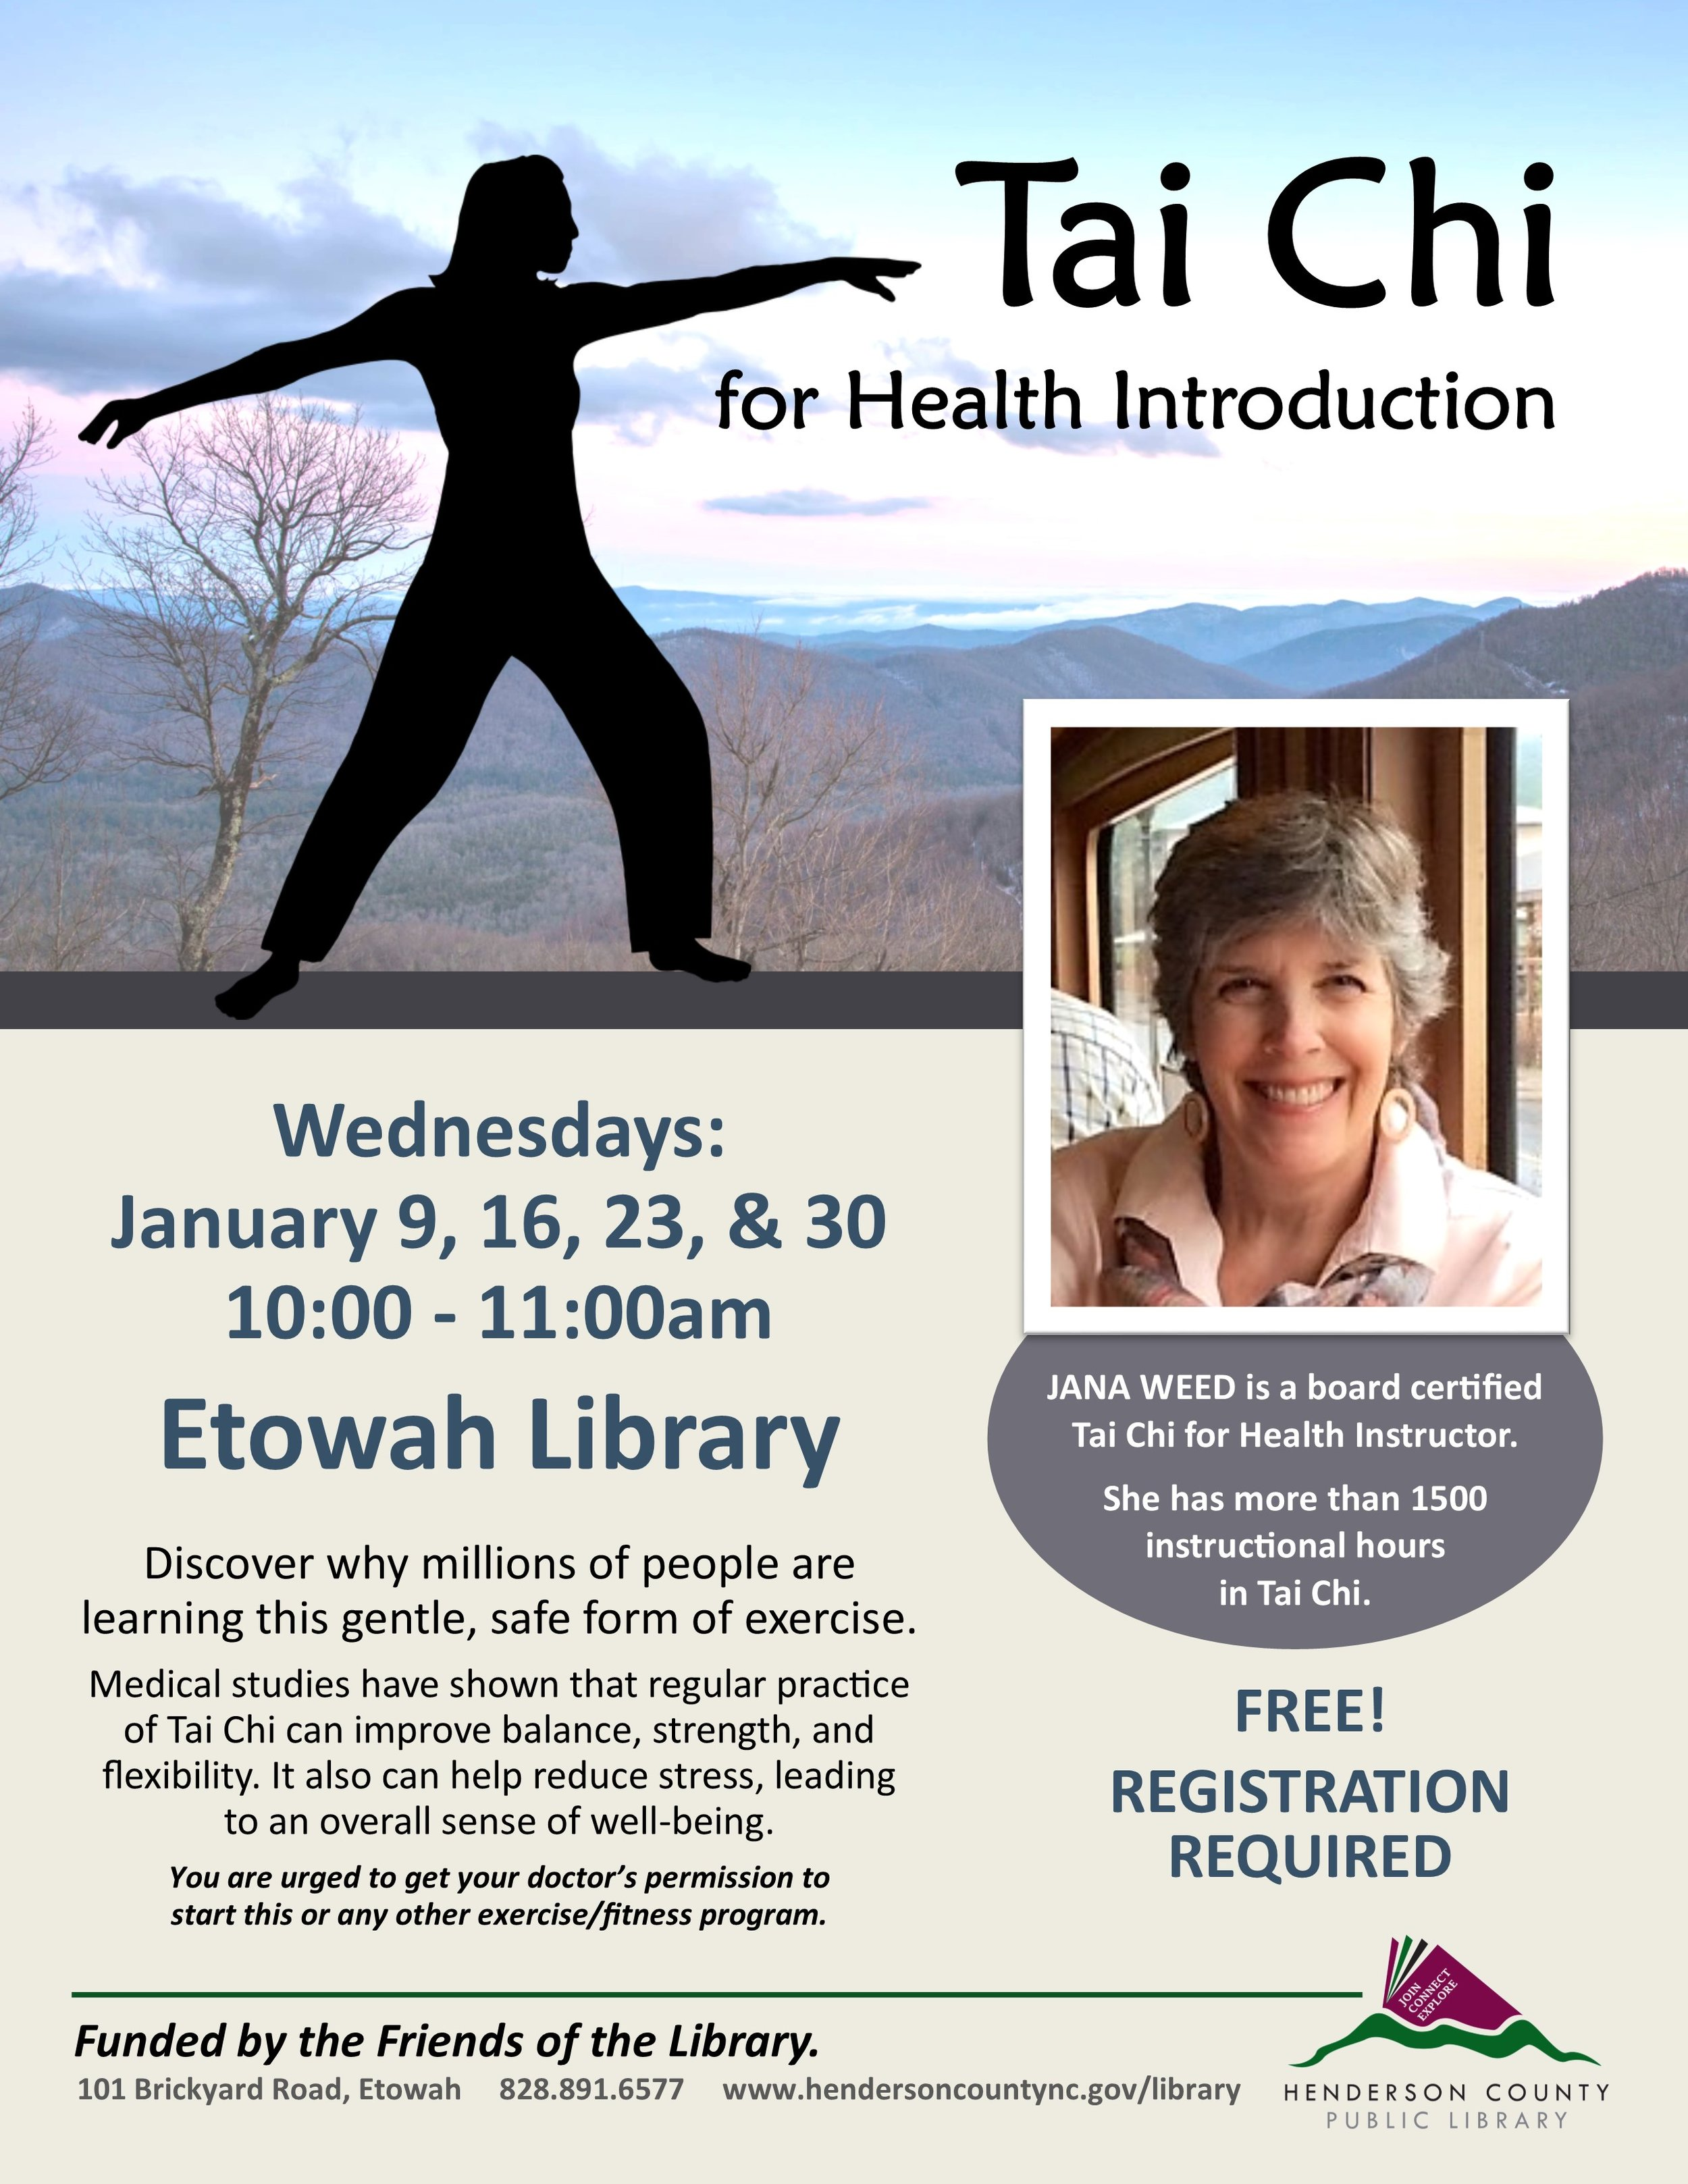 ET- Tai Chi for Health Introduction.jpg